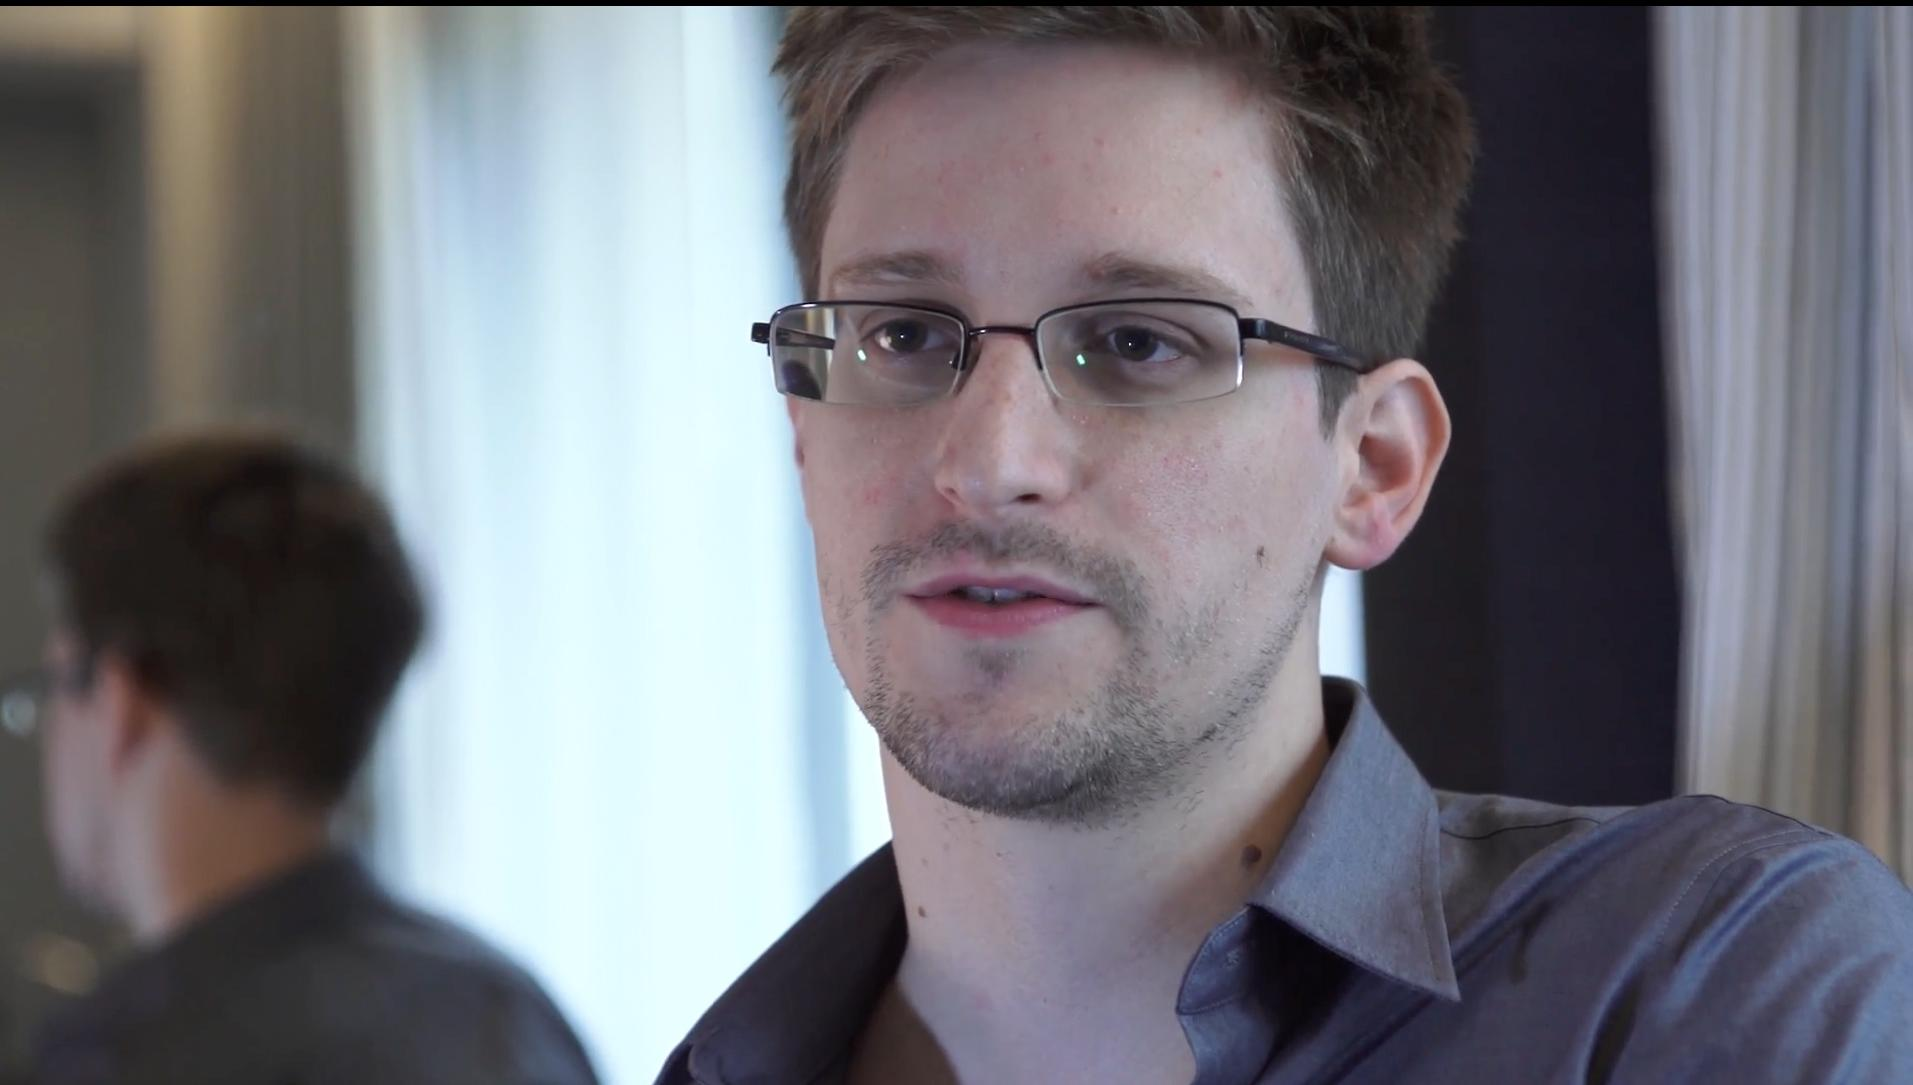 This photo provided by The Guardian Newspaper in London shows Edward Snowden, who worked as a contract employee at the National Security Agency, on Sunday, June 9, 2013, in Hong Kong. NSA leaker Edward Snowden claims the spy agency gathers all communications into and out of the U.S. for analysis, despite government claims that it only targets foreign traffic. (AP Photo/The Guardian, Glenn Greenwald and Laura Poitras)